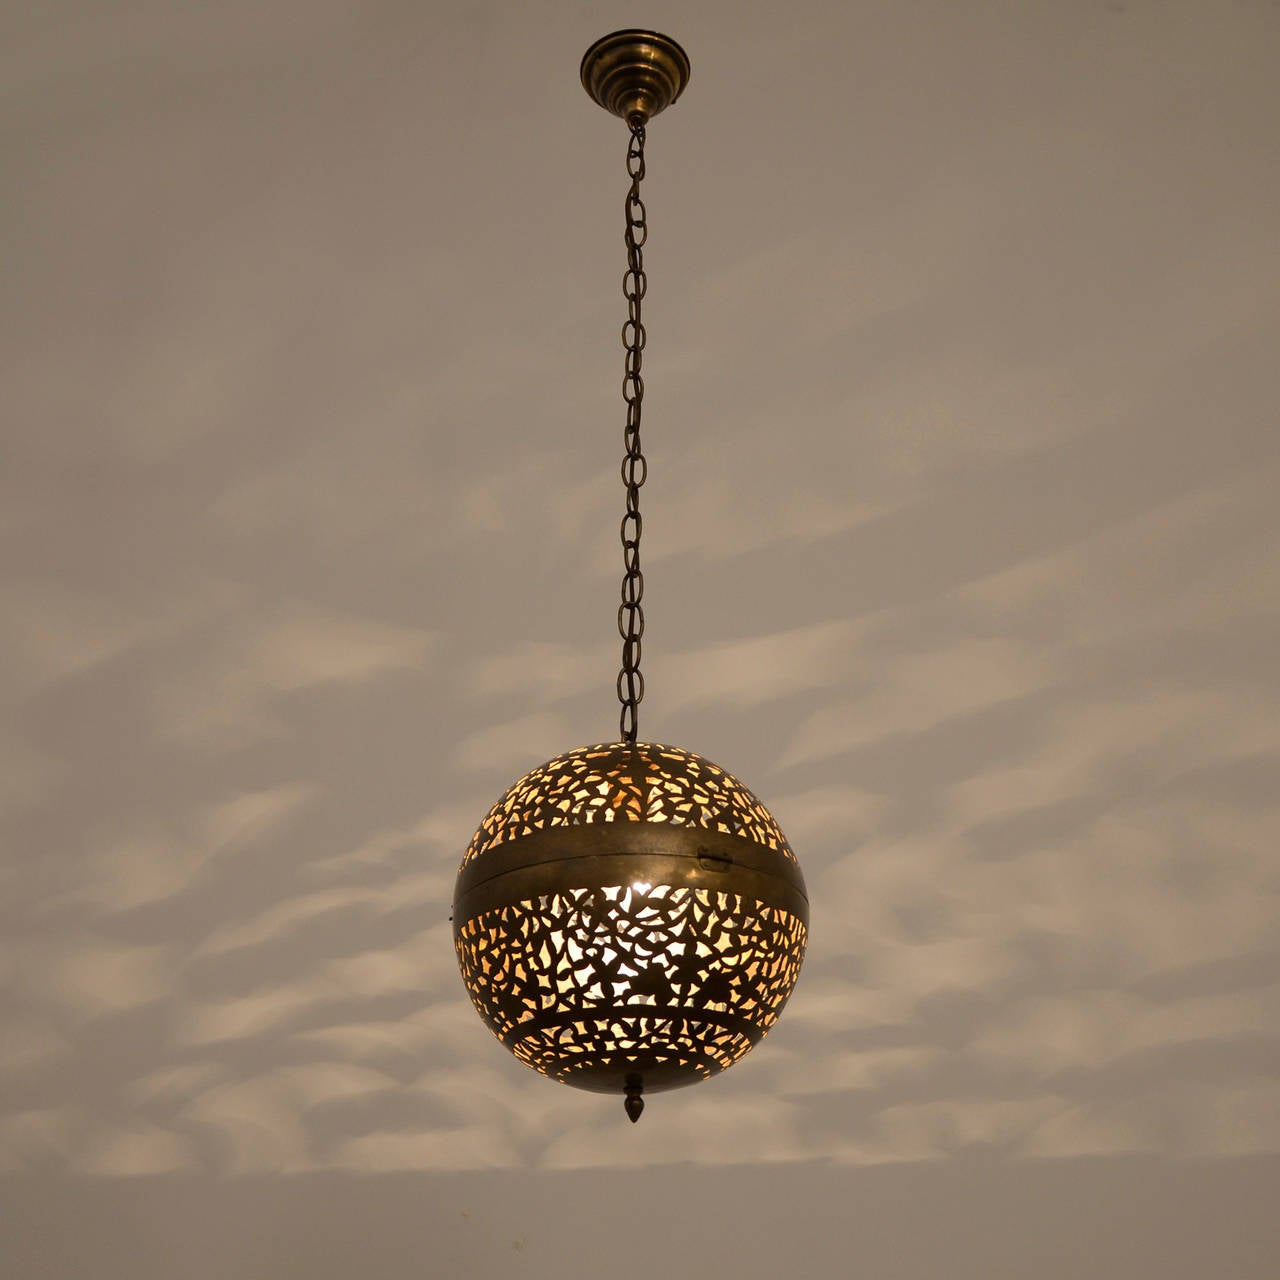 Circa Lighting Modern Globe Pendant :